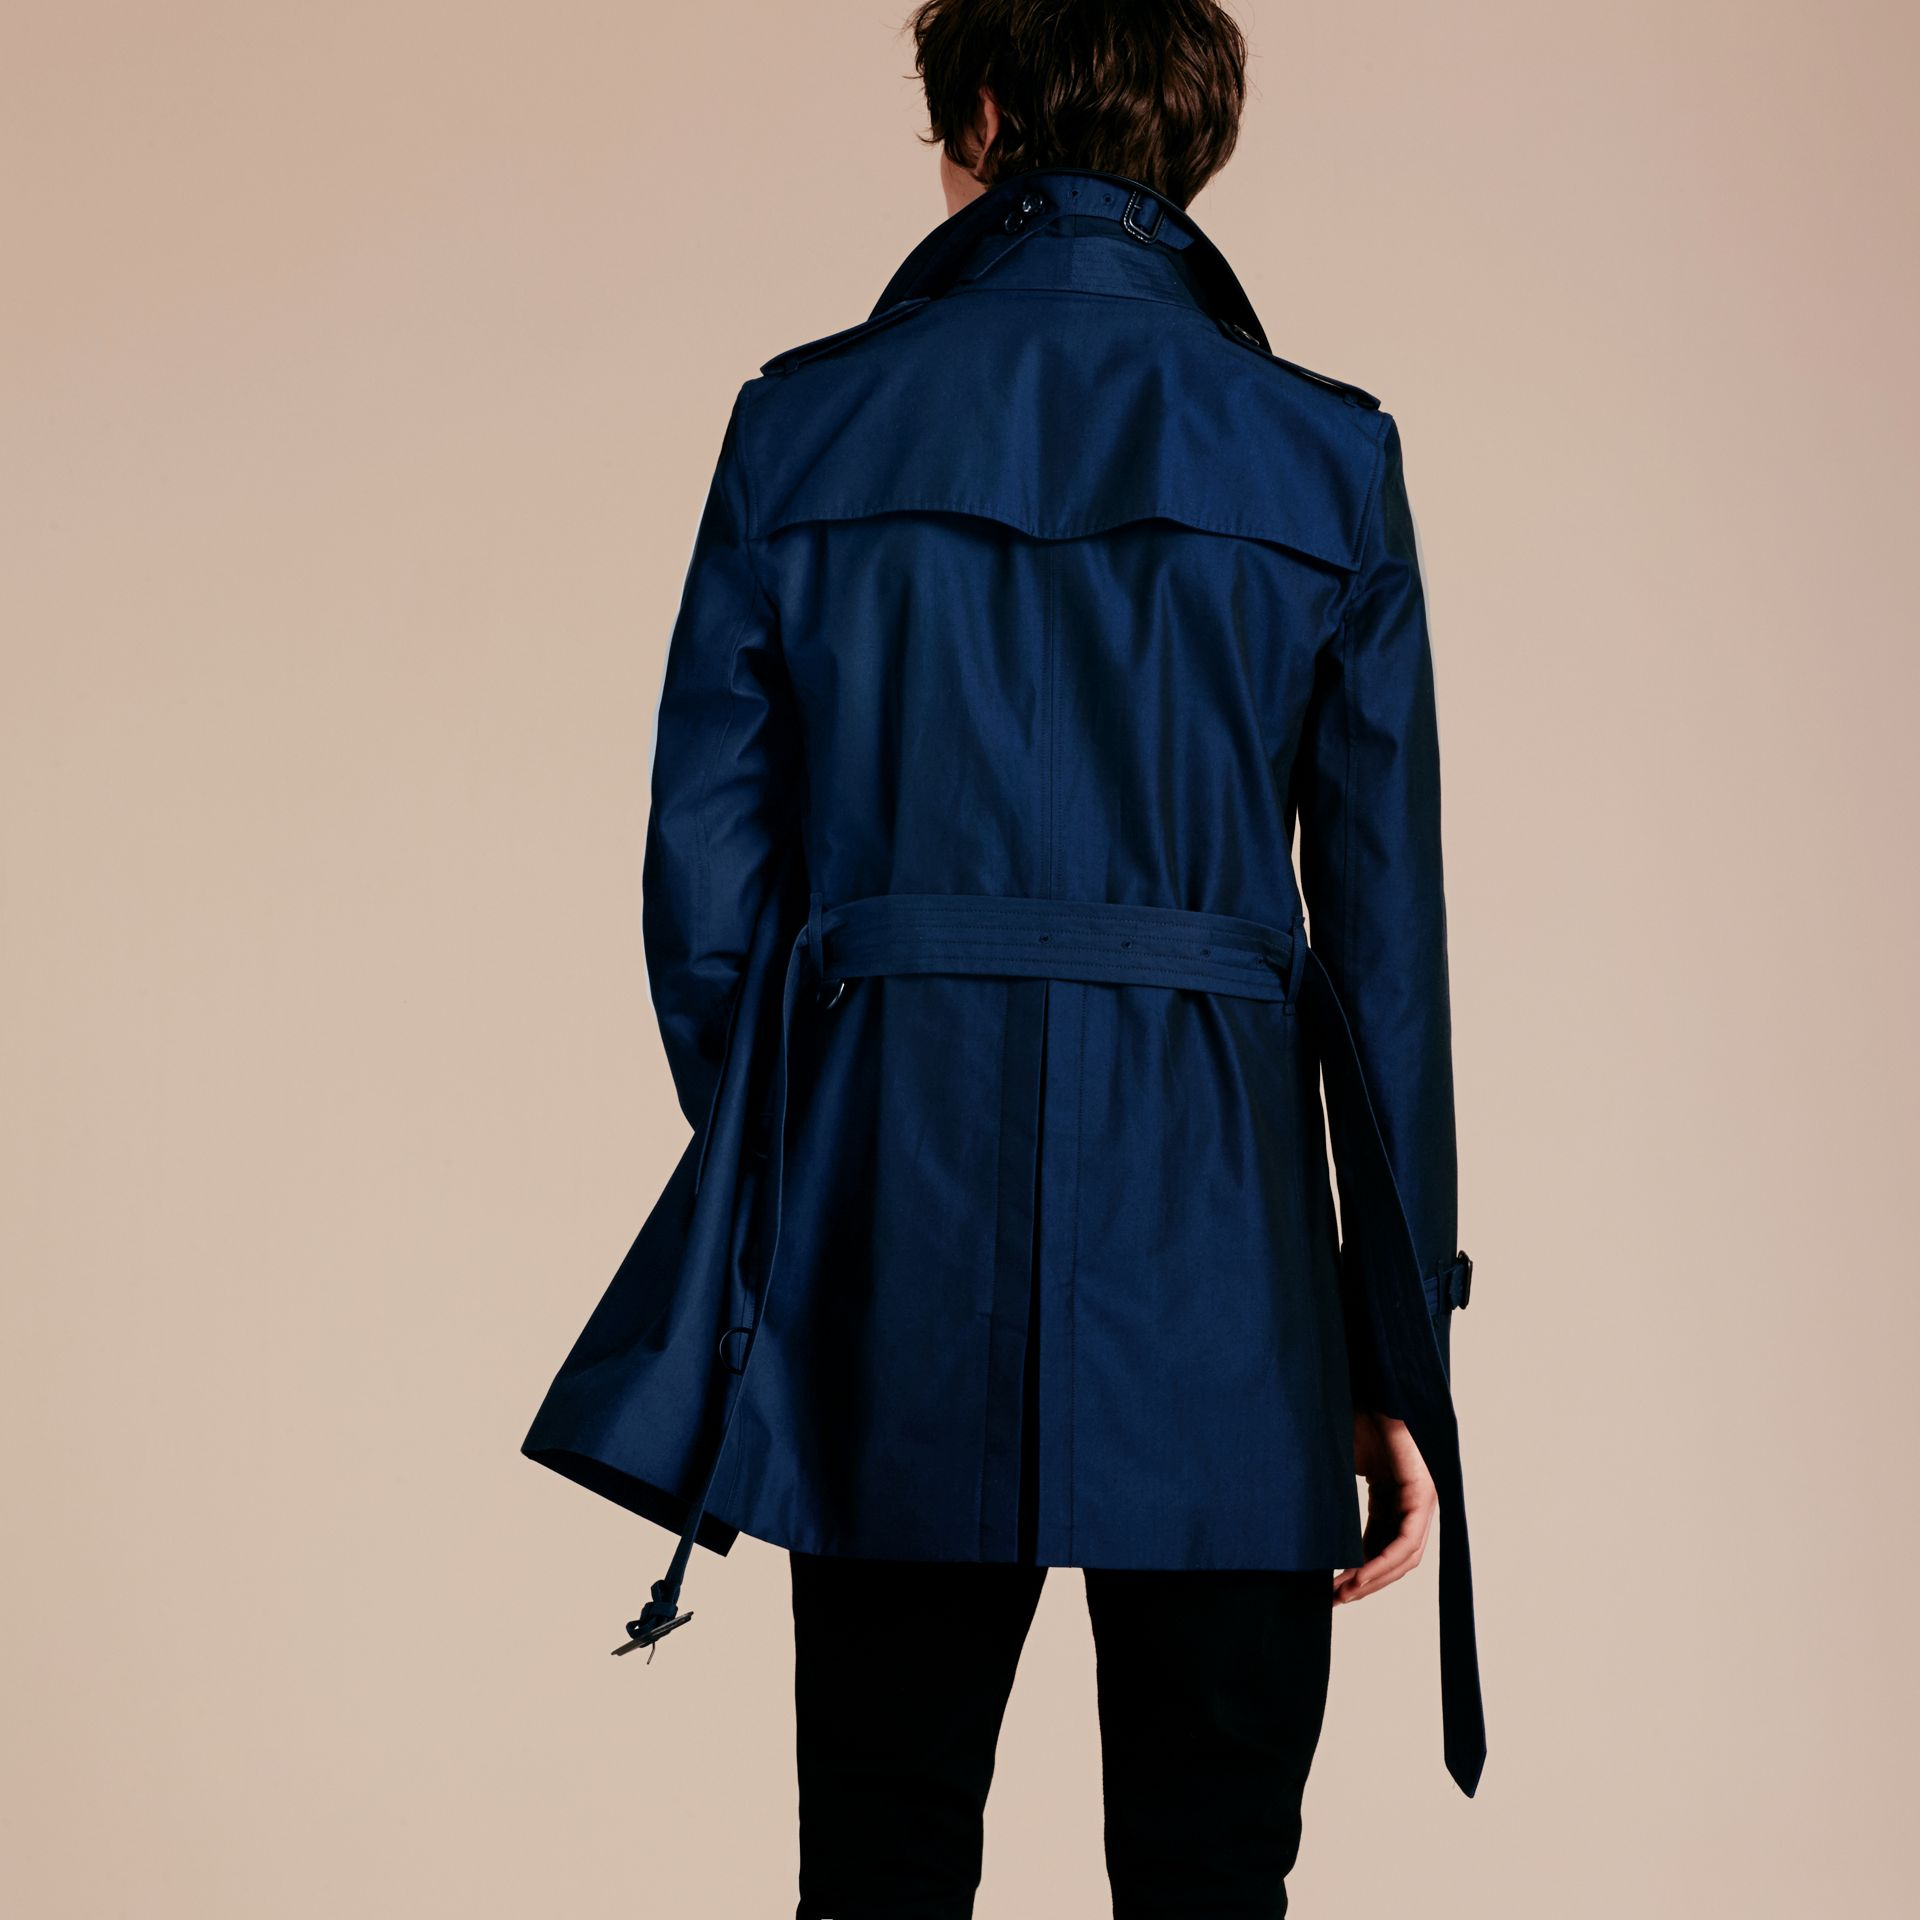 Bright regency blue Cotton Gabardine Trench Coat with Lambskin Topcollar - gallery image 3